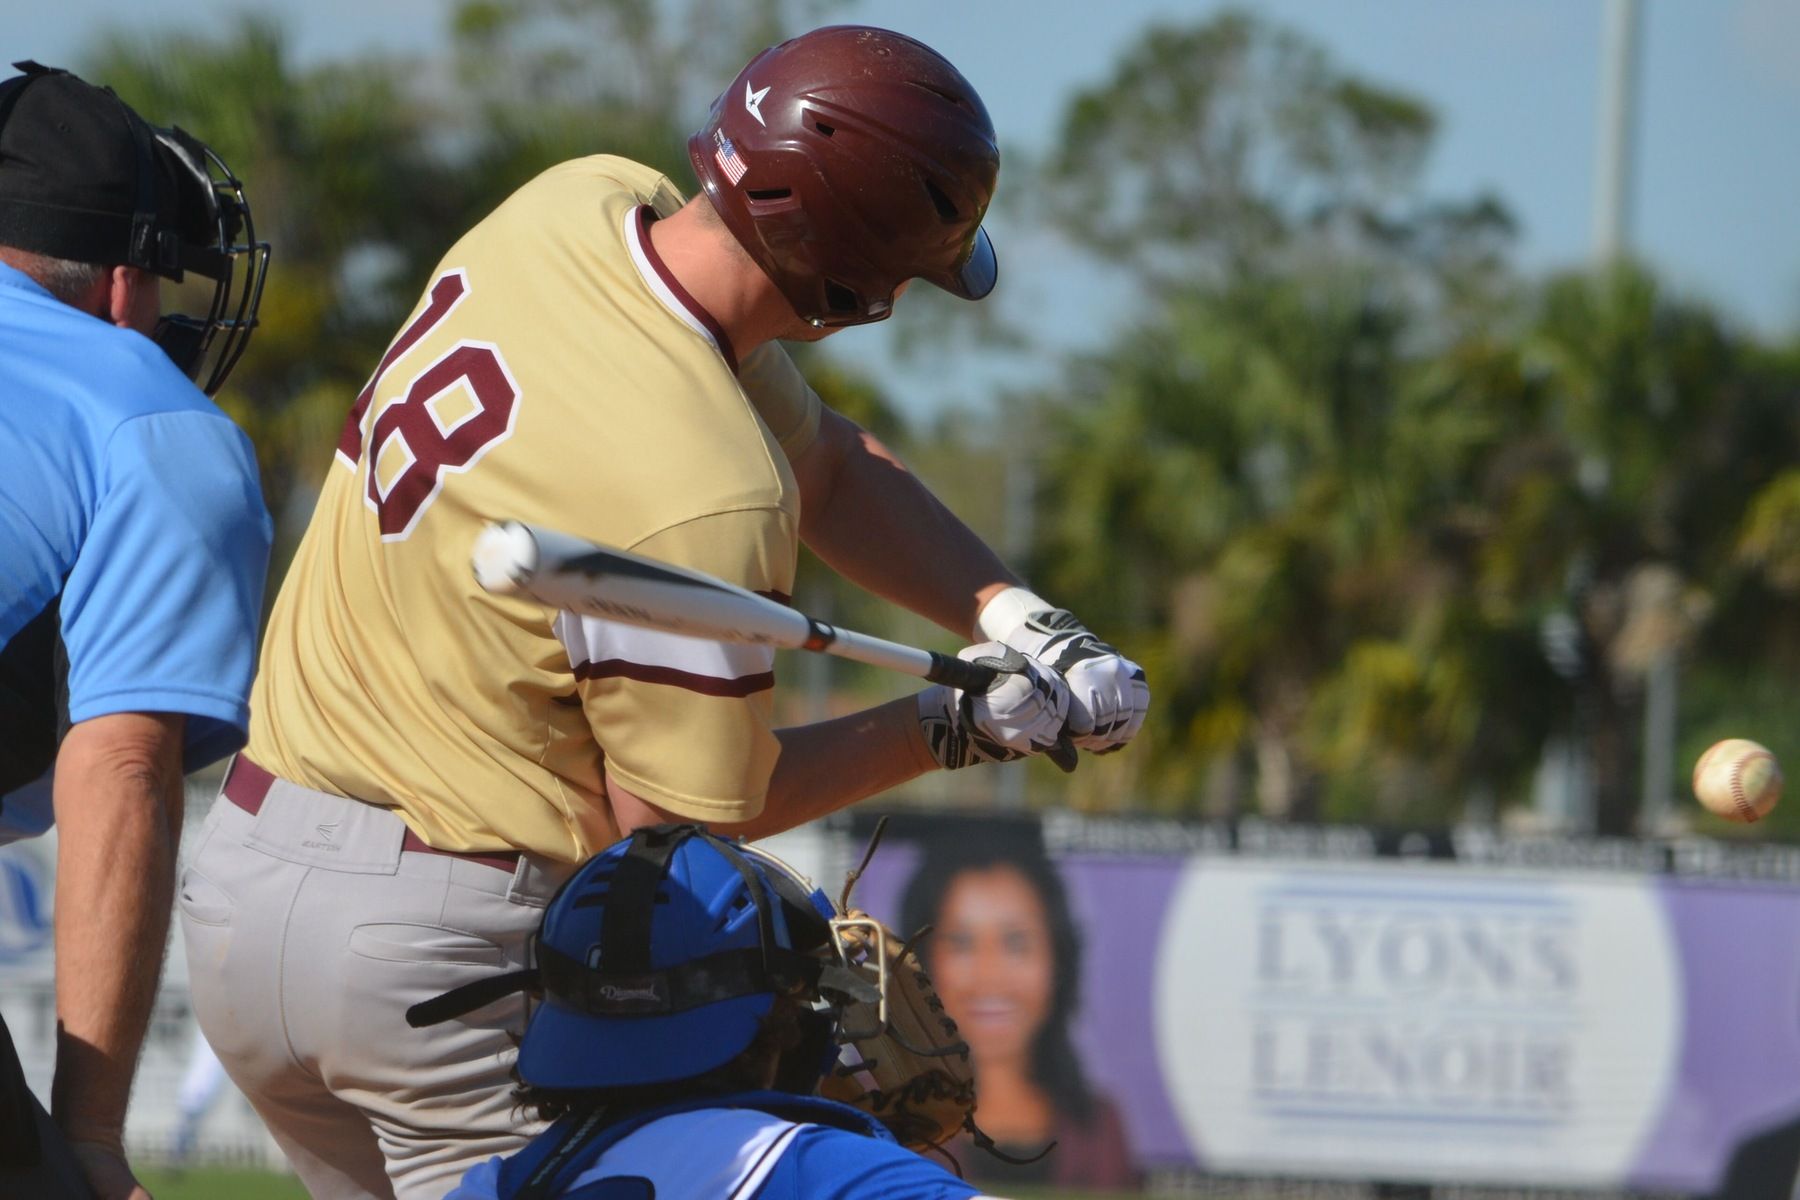 Late Inning Rally Lifts Ashland Over Cavaliers, 8-4